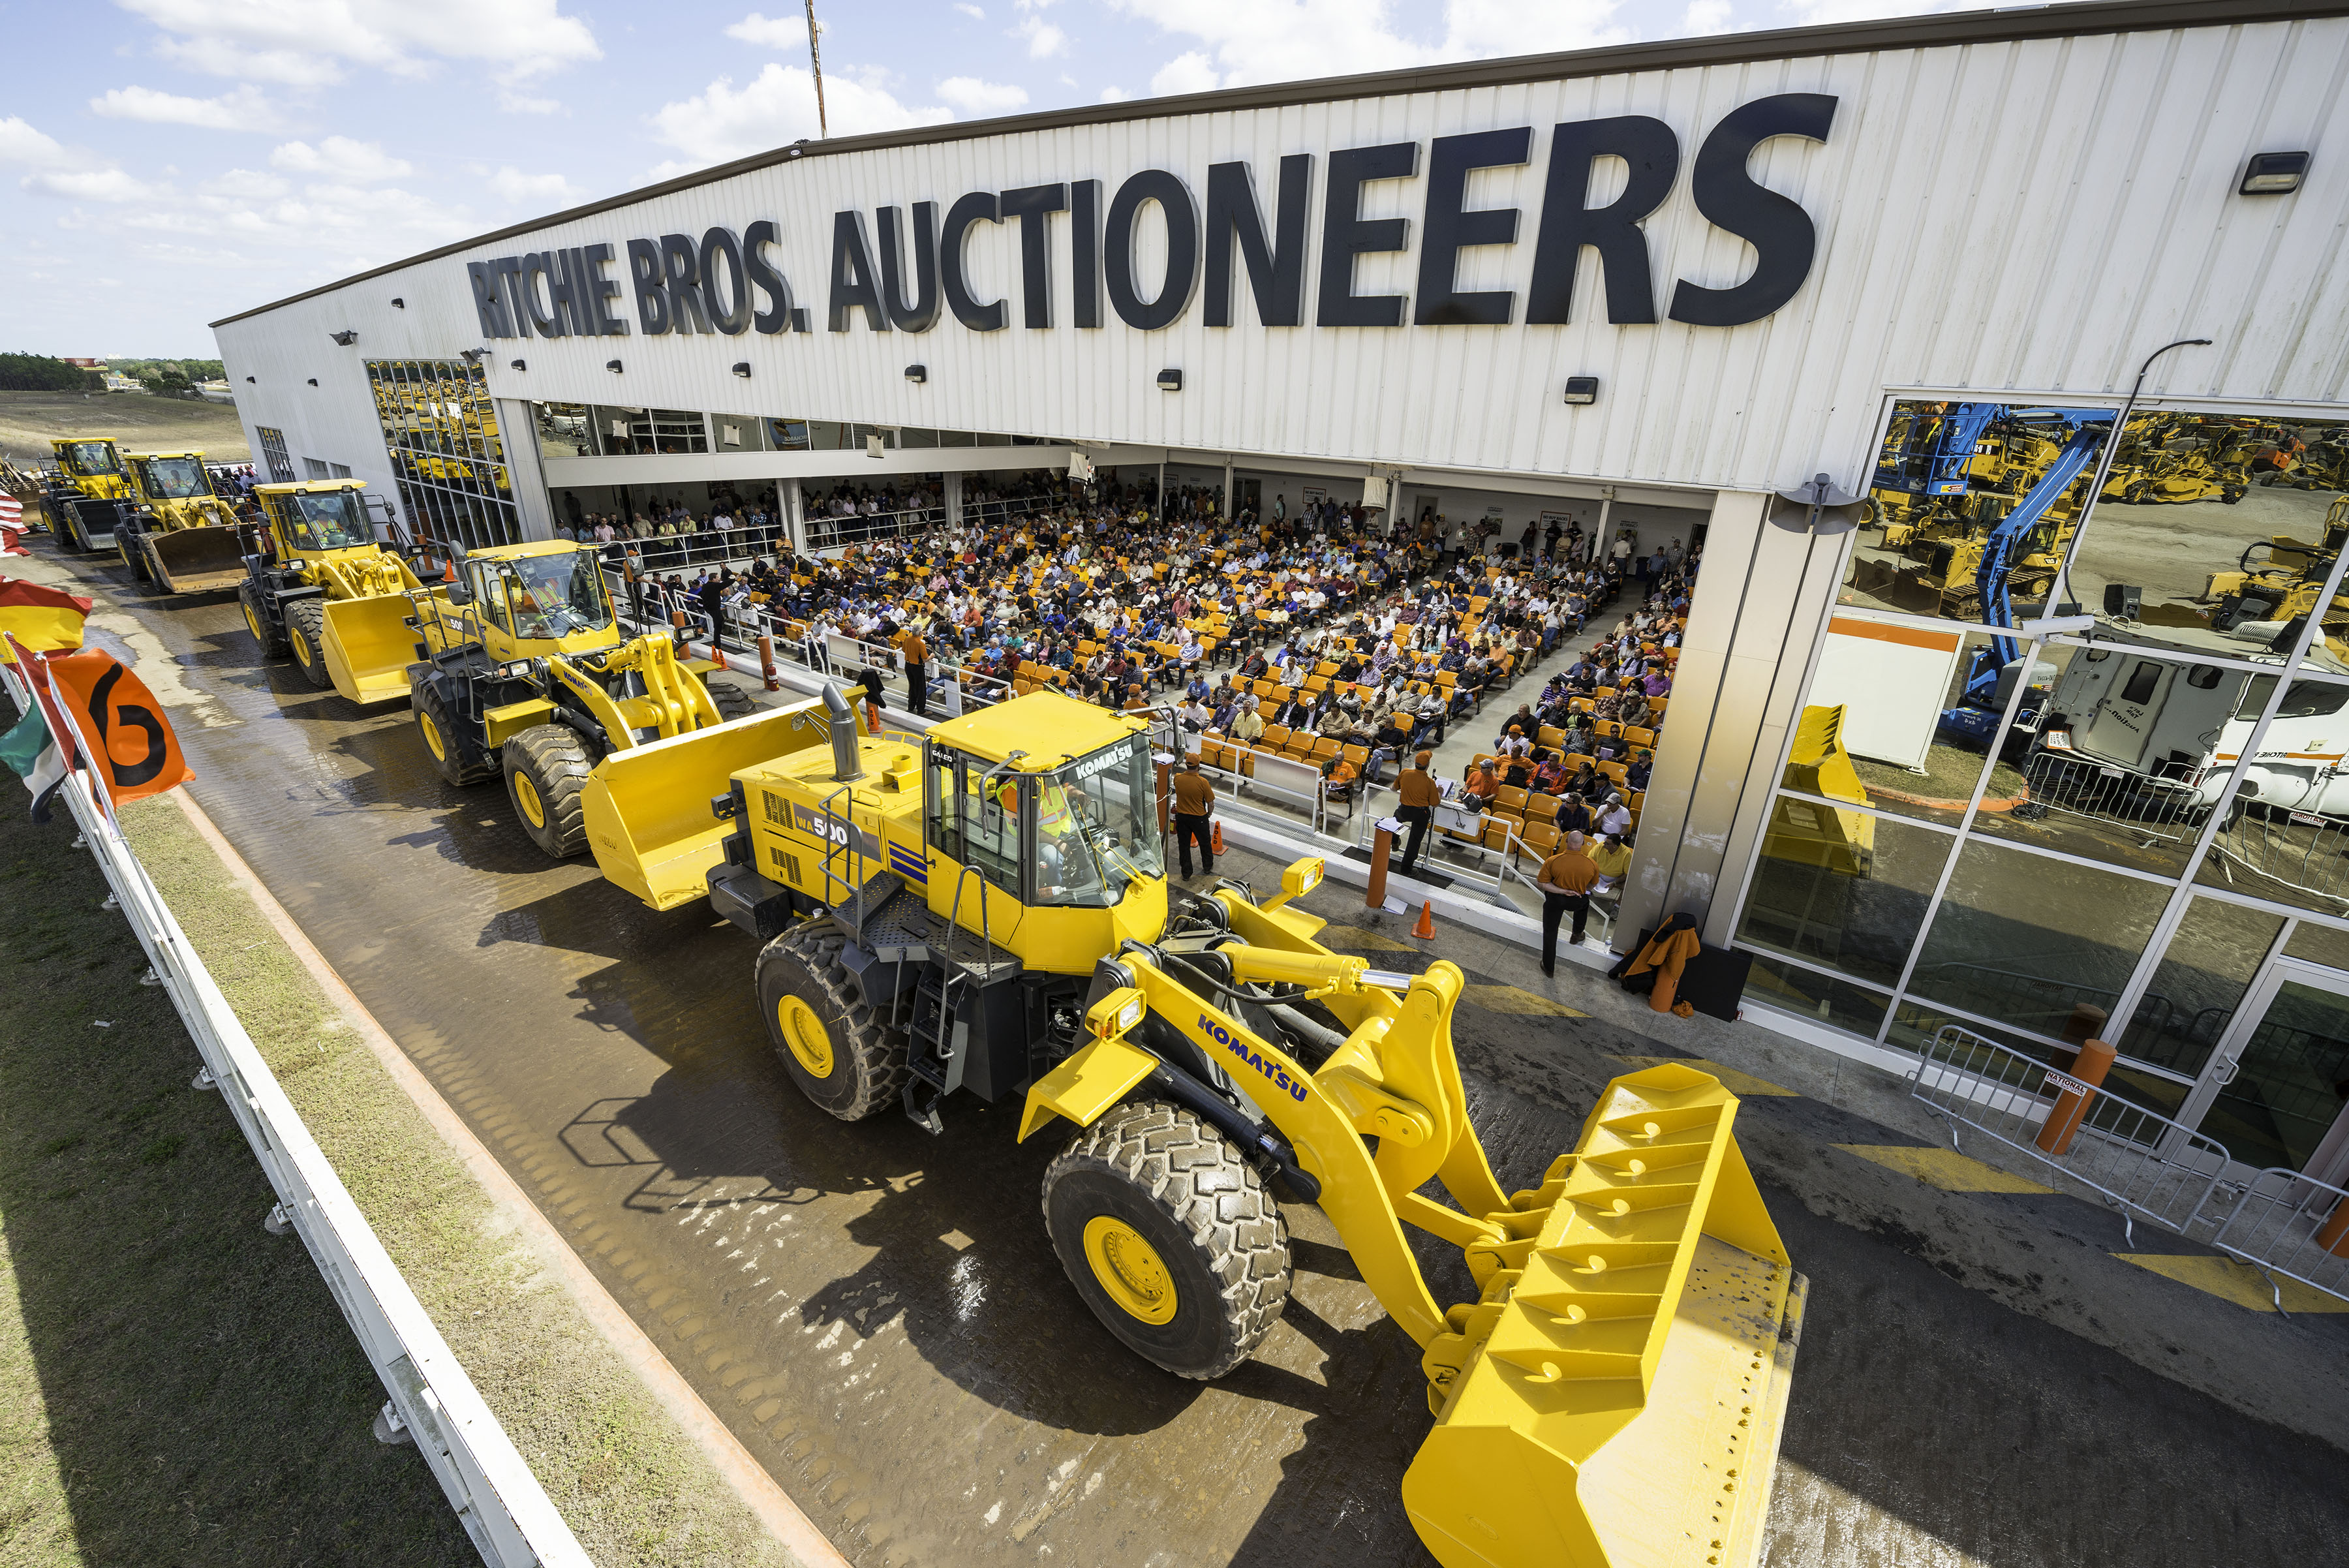 wheel-loaders woll out at an RB orlando auction